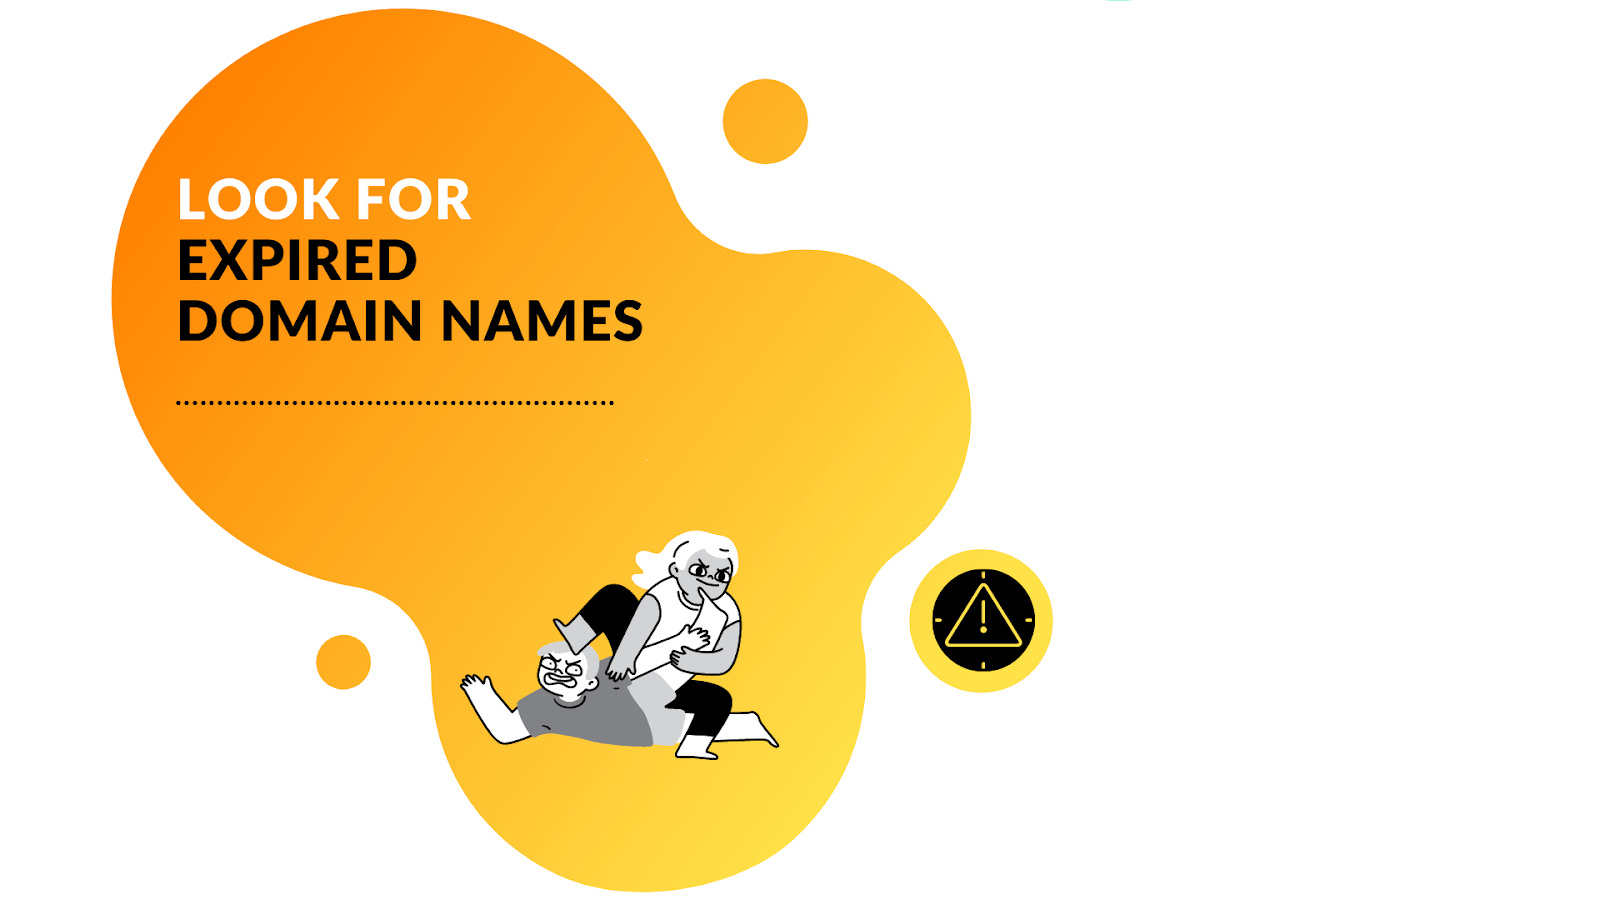 When starting a new business, check for expired domains to get a head start